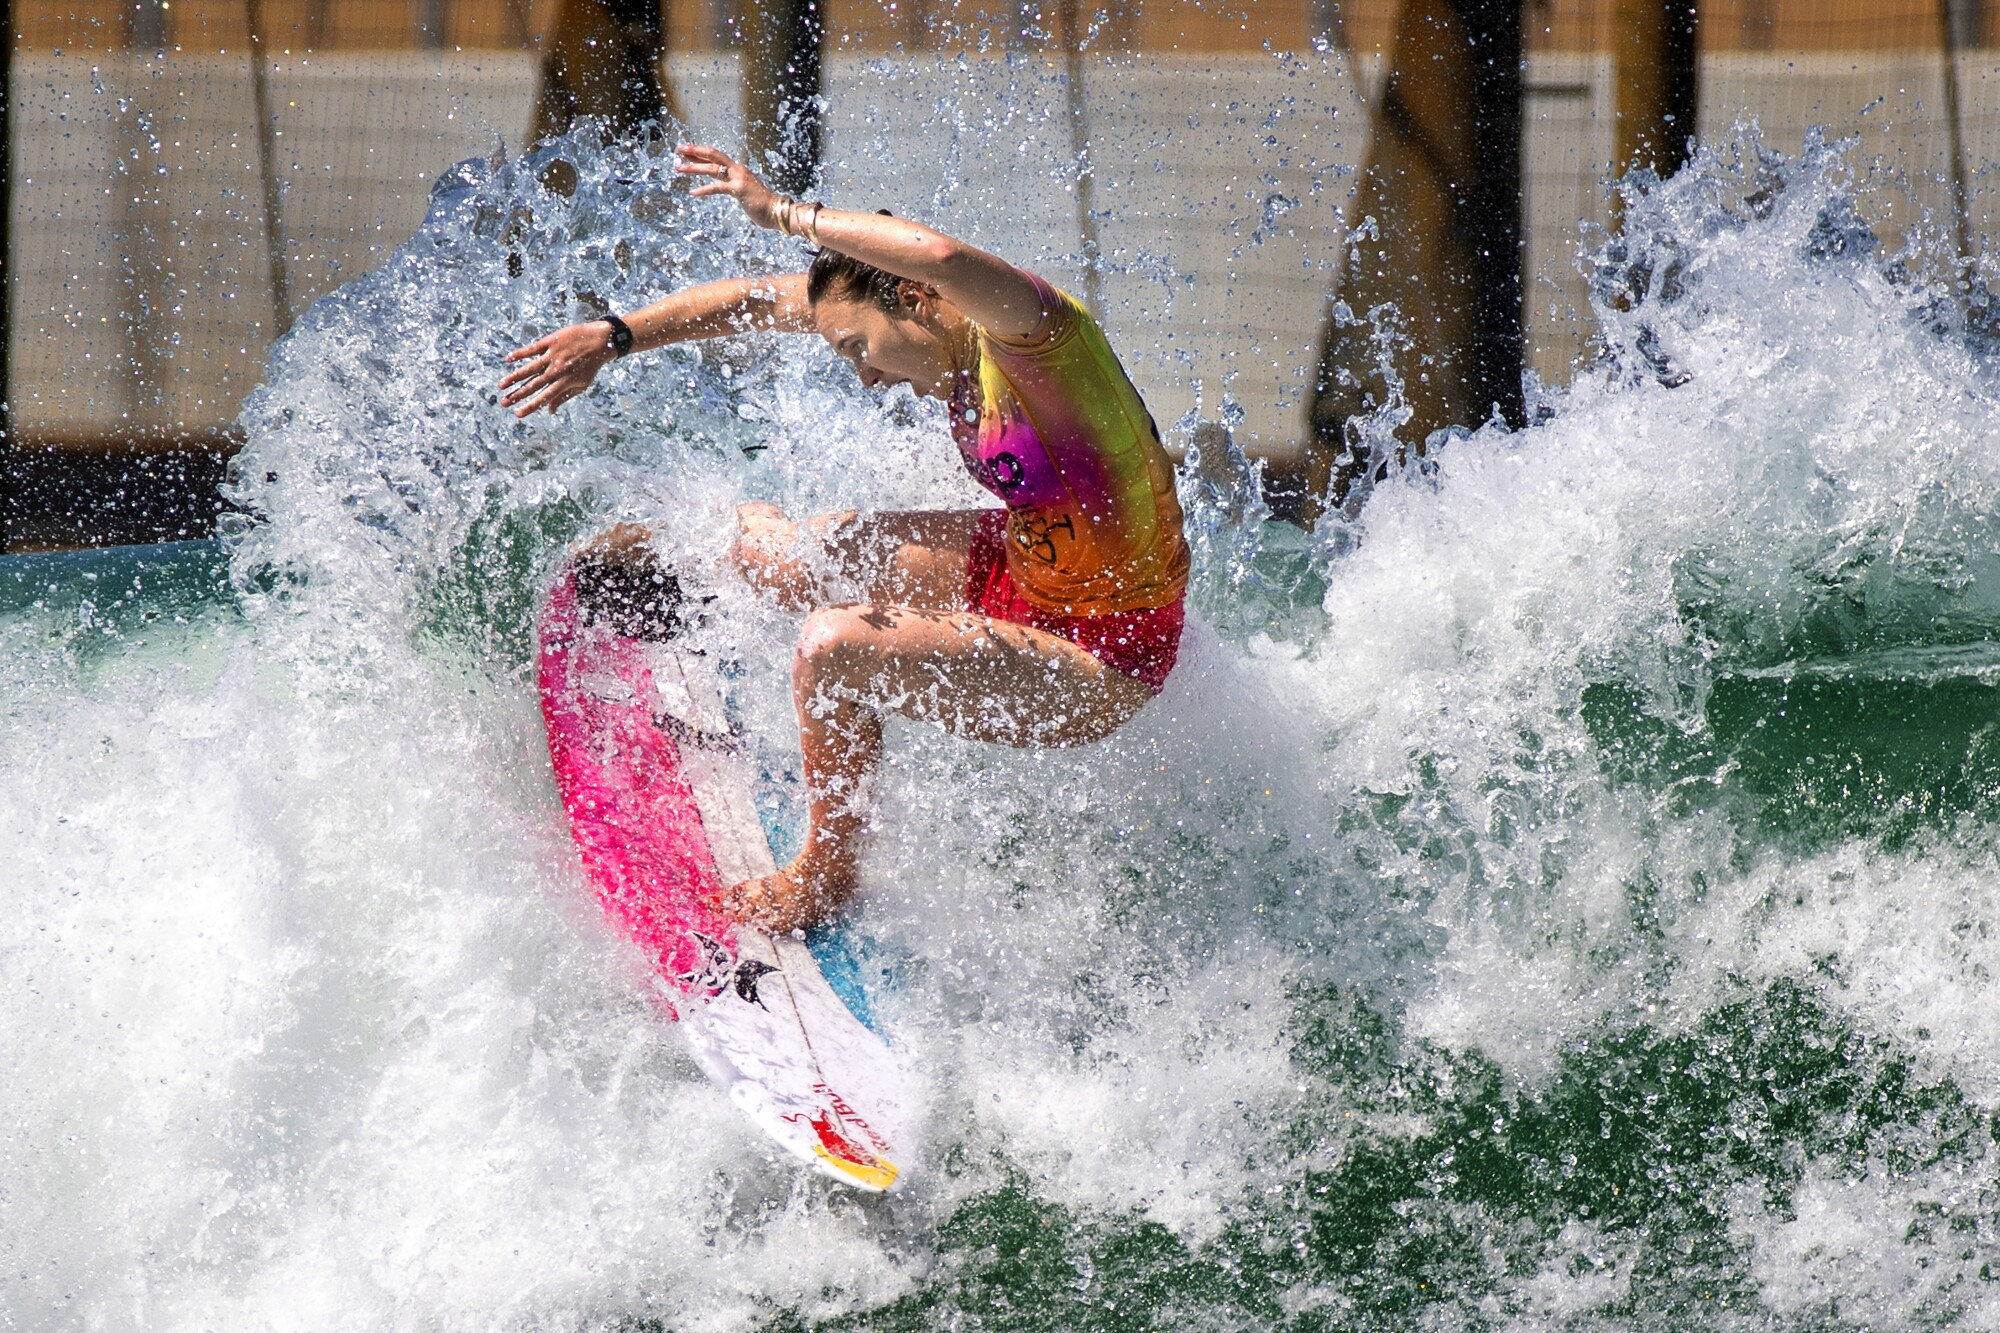 Carissa Moore of Hawaii competes at the Jeep Surf Ranch Pro at the Kelly Slater WSL Surf Ranch in Lemoore, Calif.